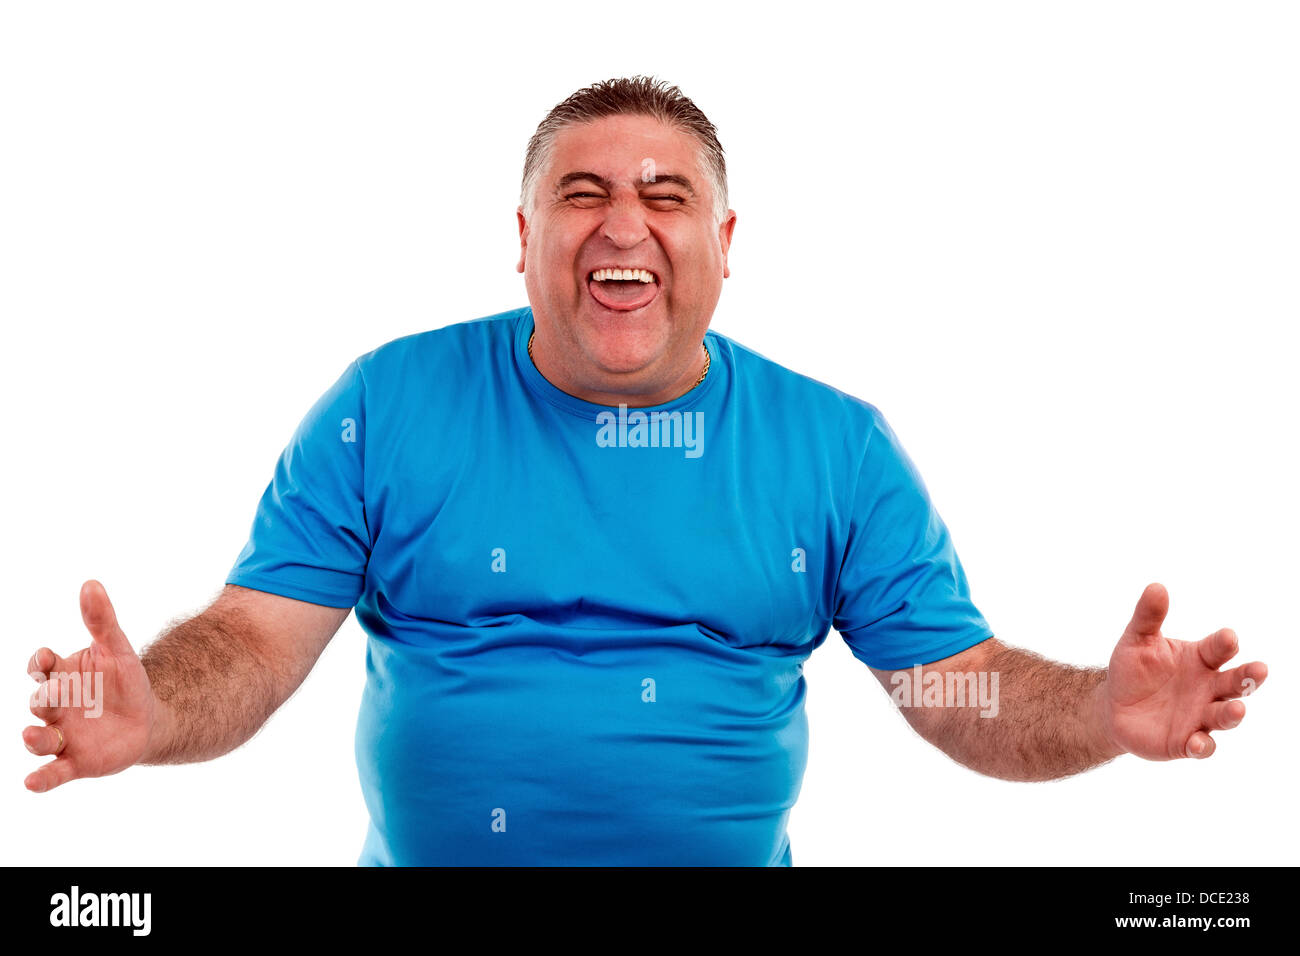 A man laughing hysterically at something hilarious with a funny expression on his face. - Stock Image